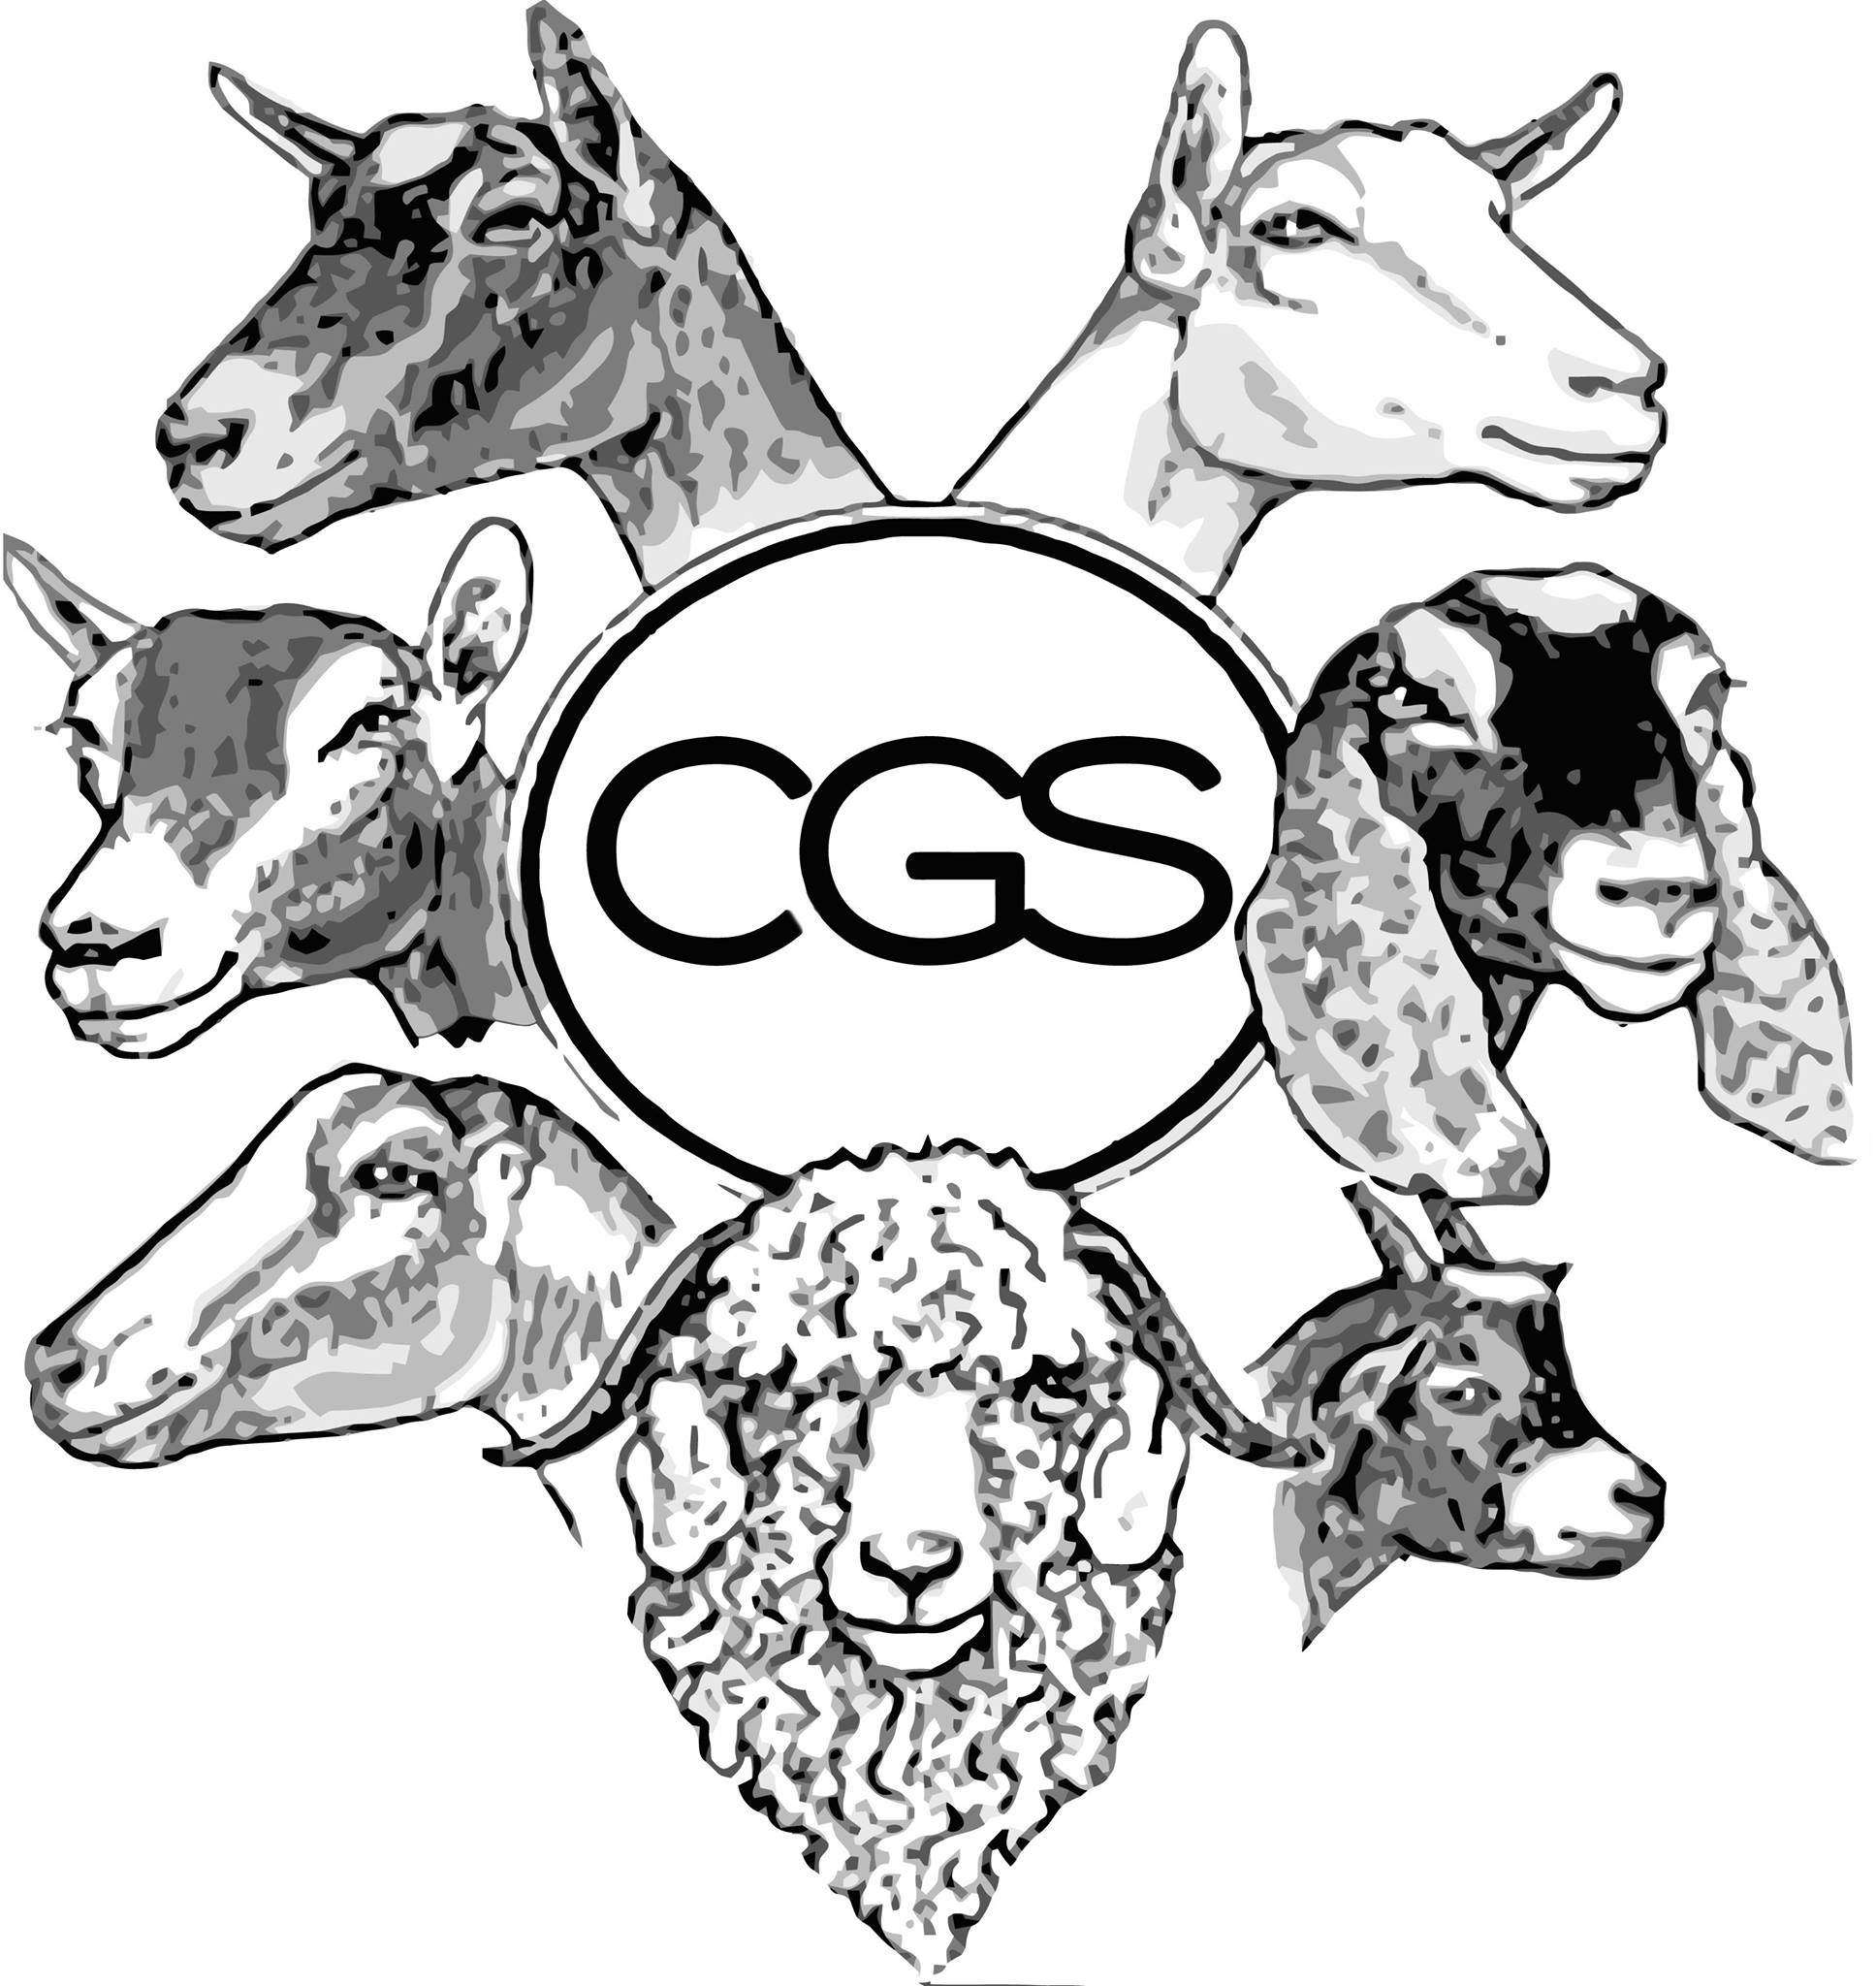 The Canadian Goat Society